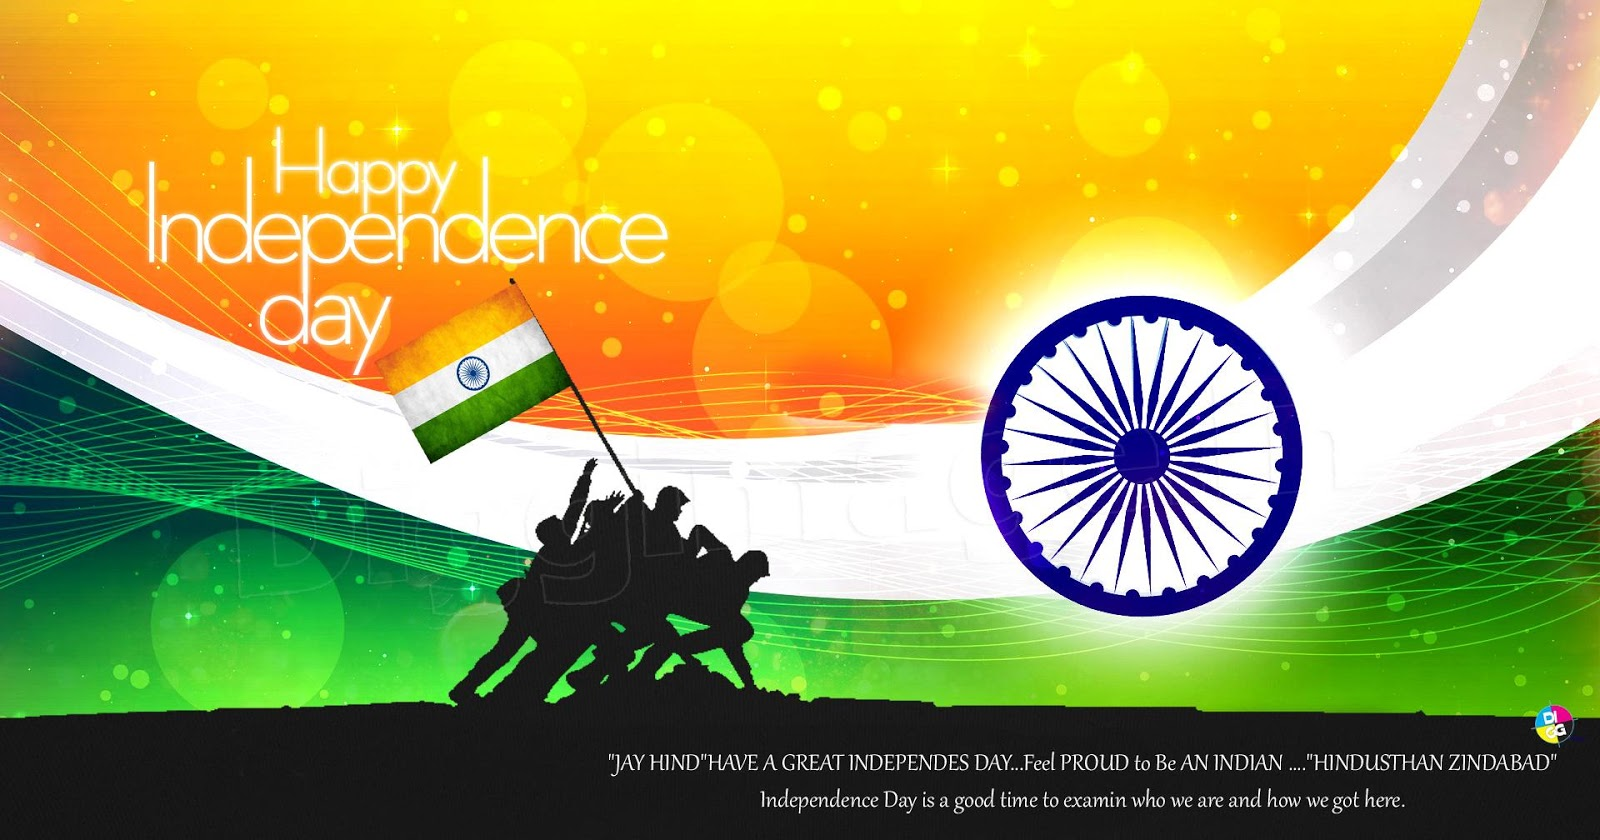 independence day 15th 2017 essay and importance of independence day 15th 2017 essay and importance of the national festival